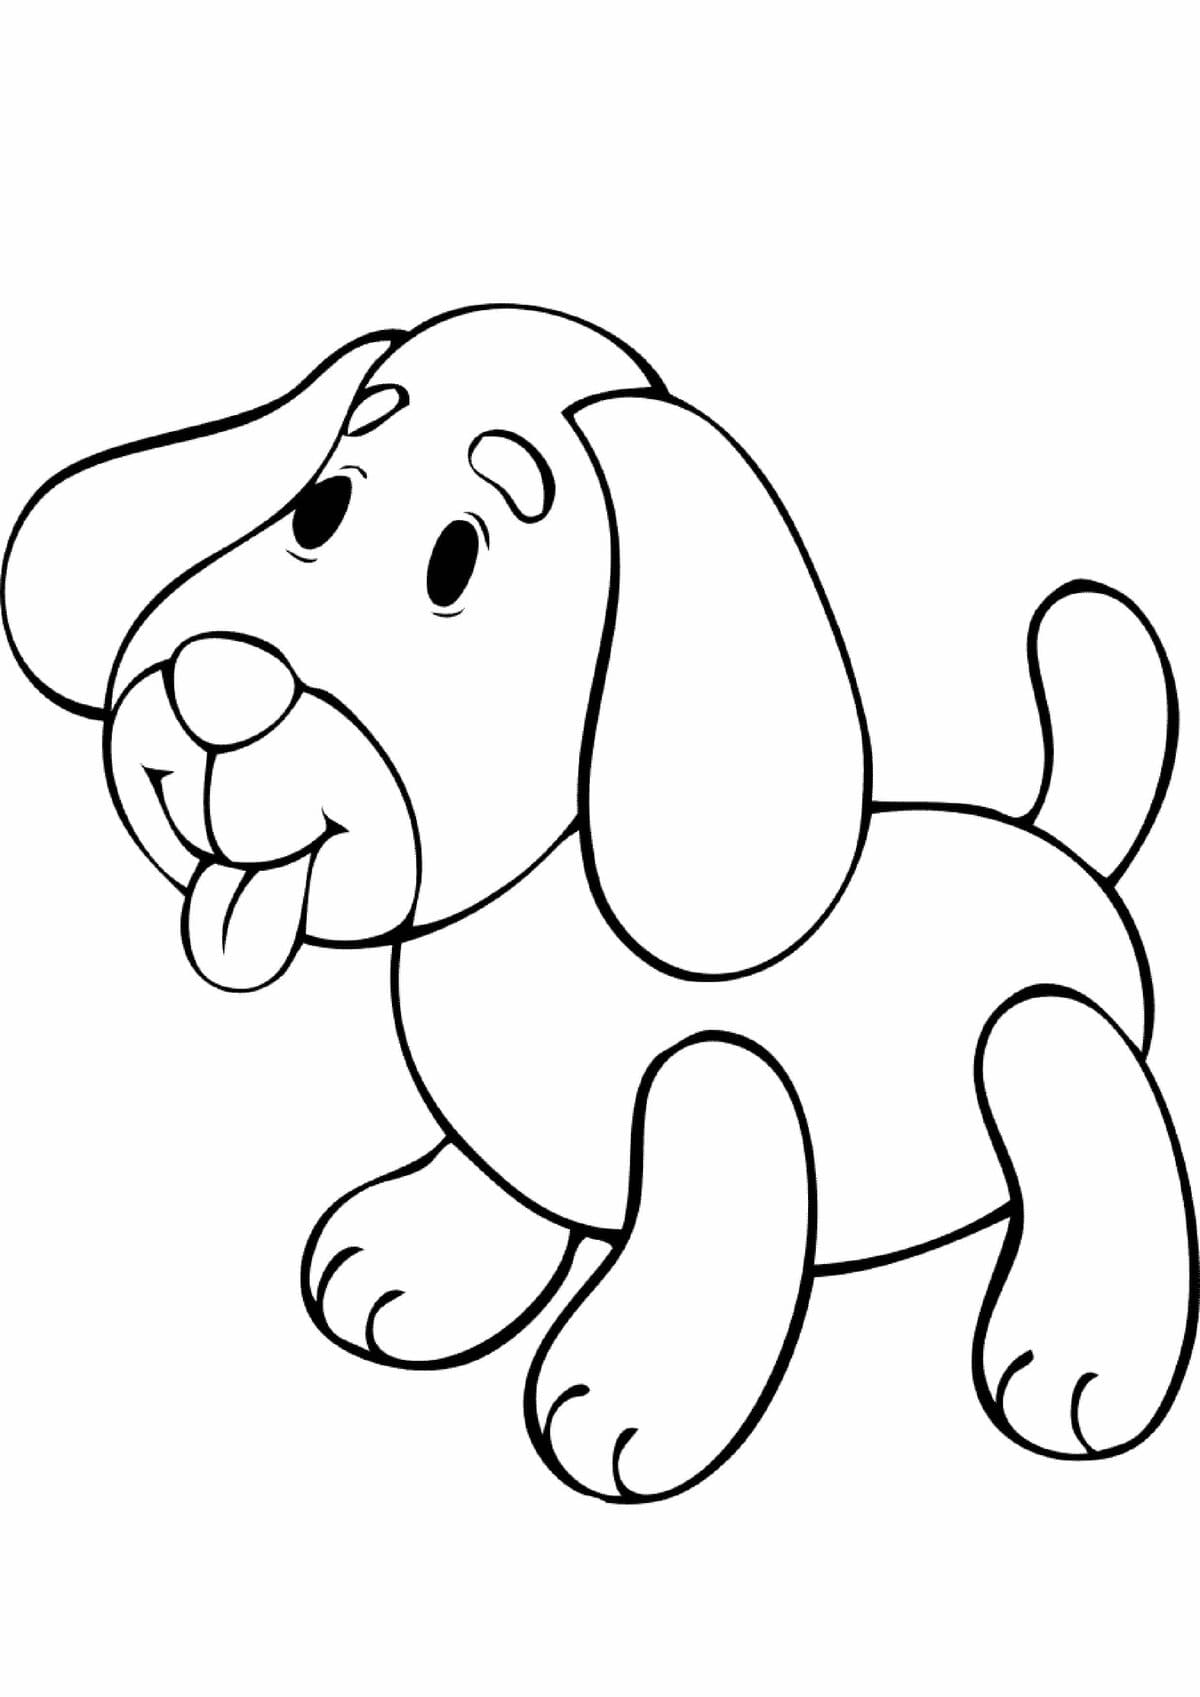 coloring sheet for 3 year old coloring pages 11 year olds free download on clipartmag sheet for old 3 coloring year